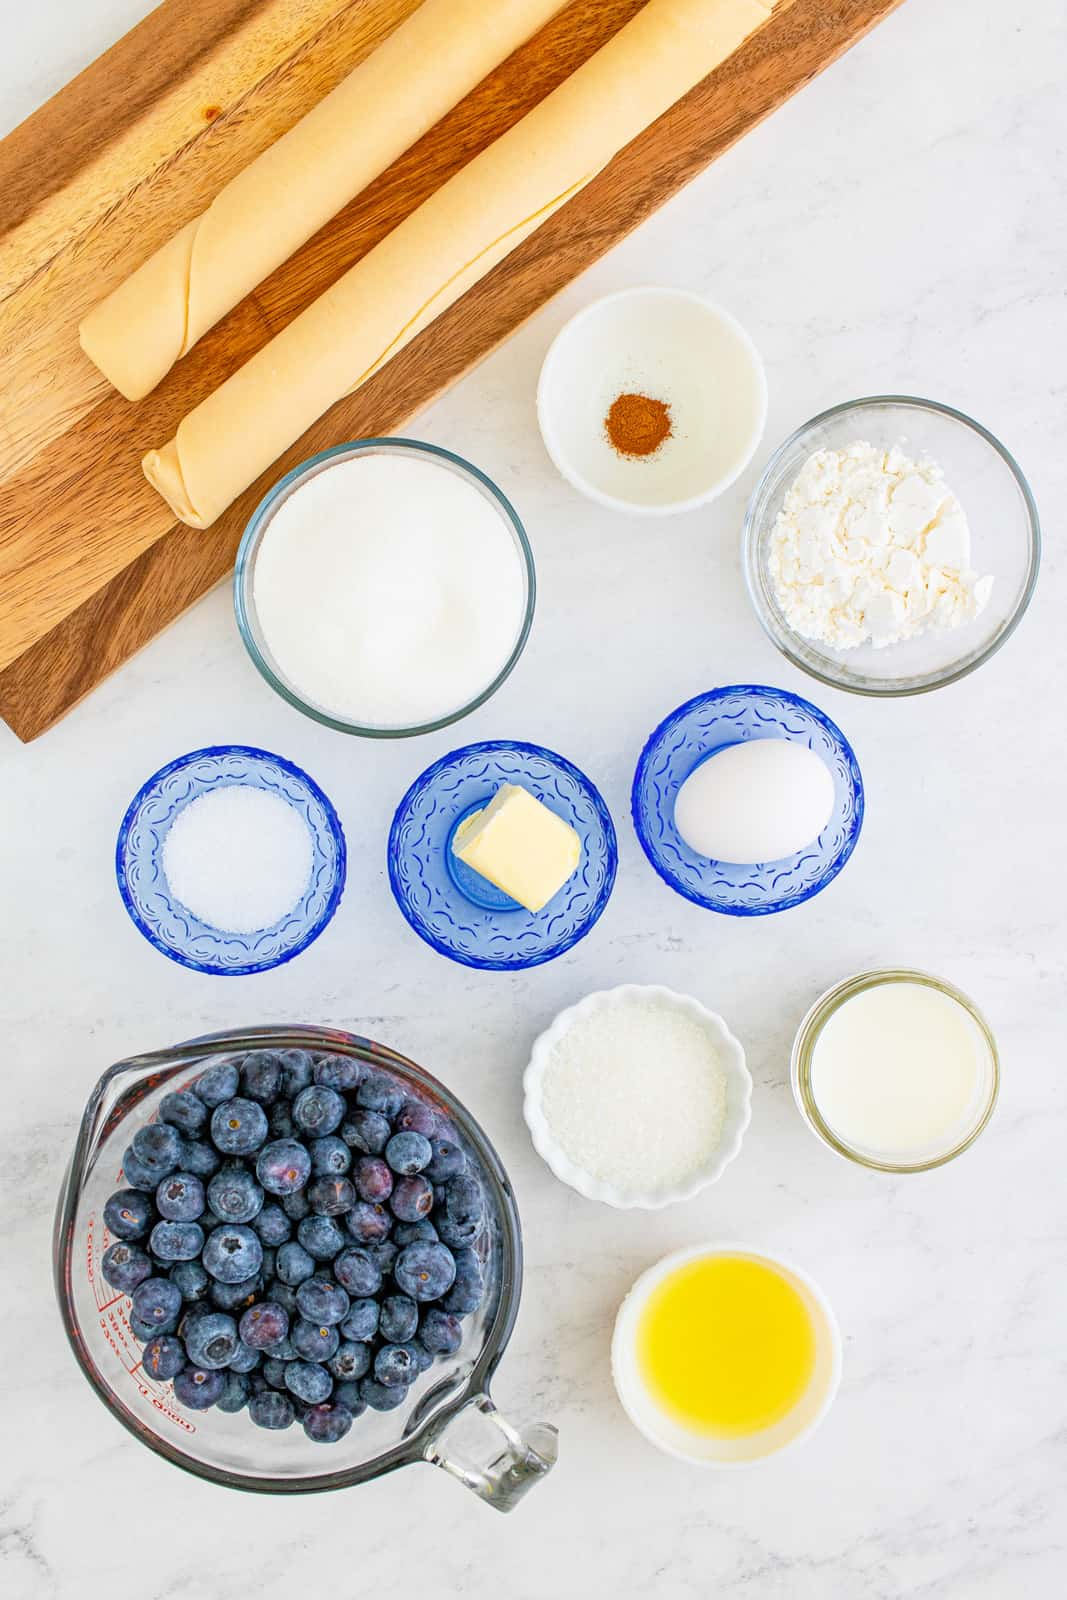 Ingredients needed to make a Blueberry Pie